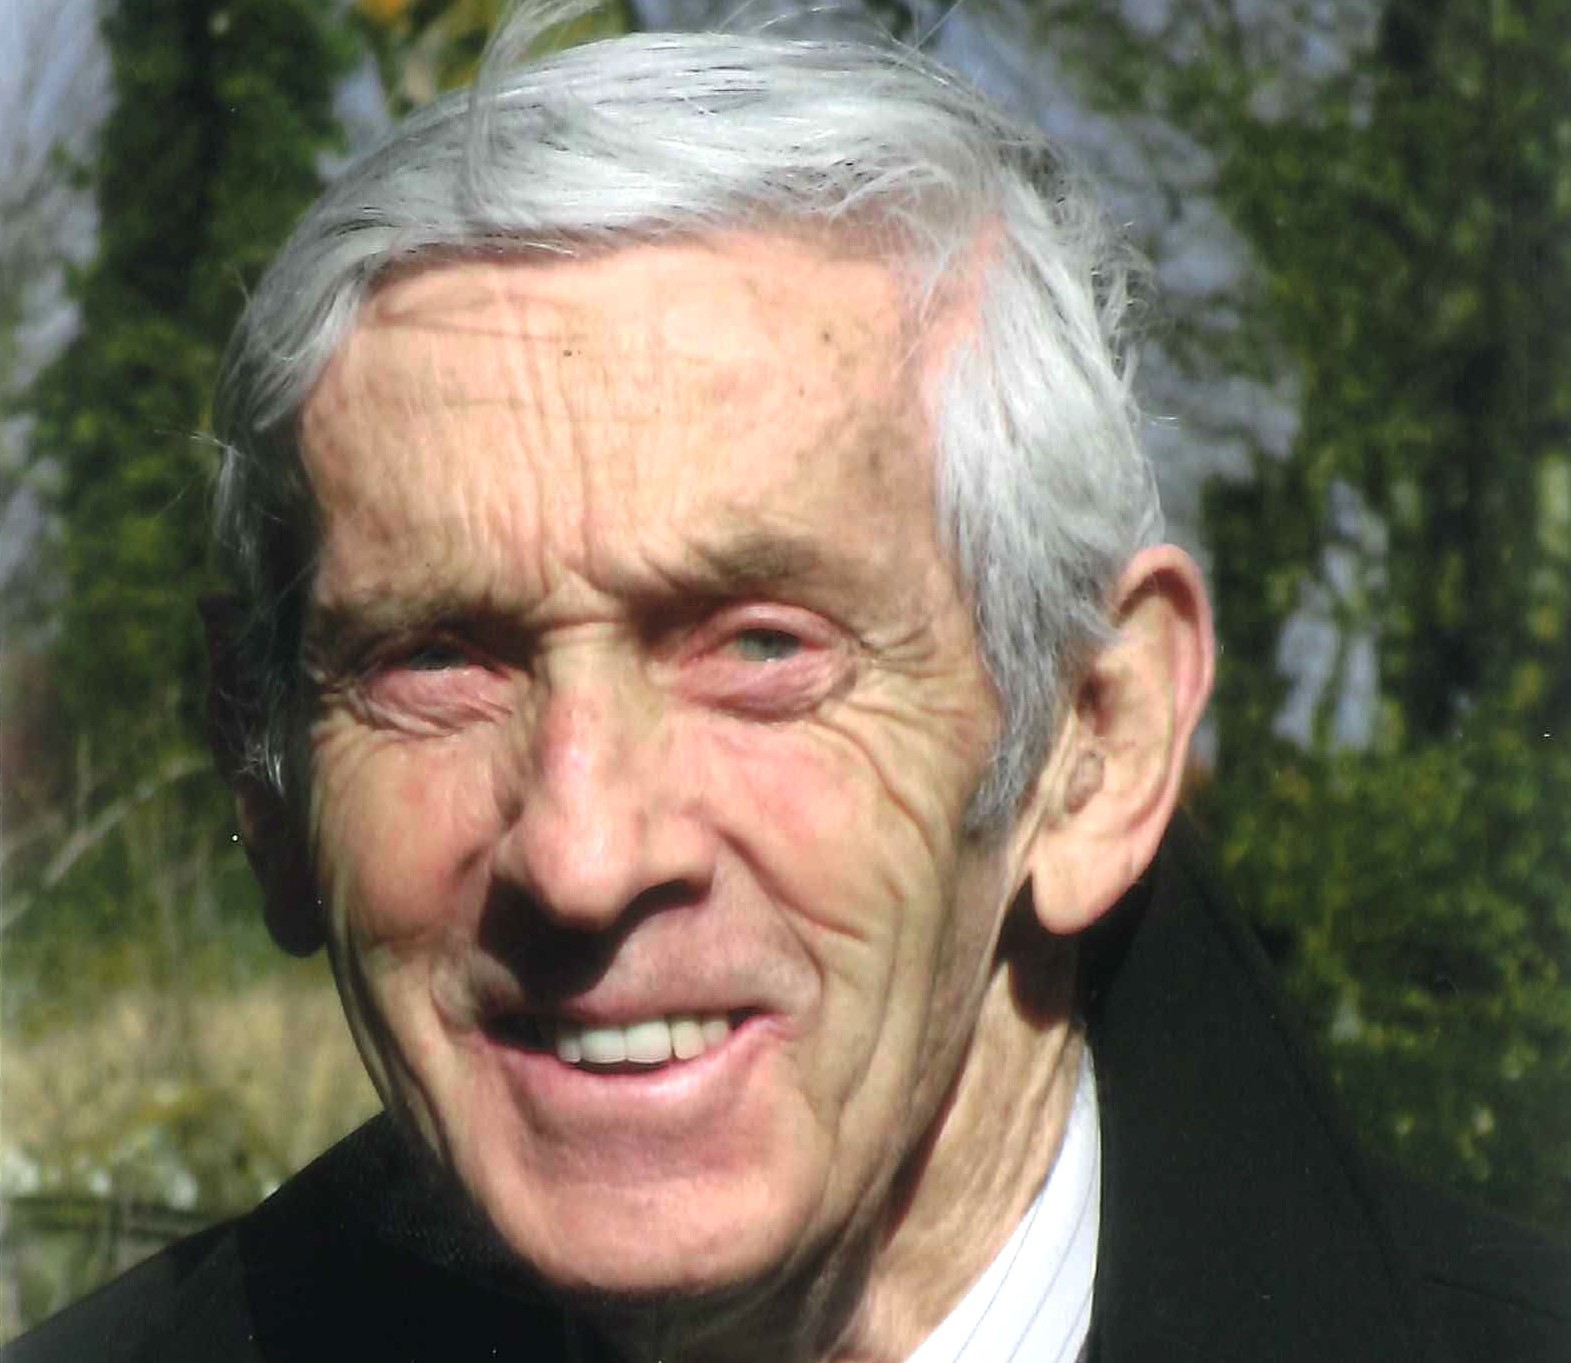 Bob Benzies, the former managing director of family business Culross the printers, has died aged 85.